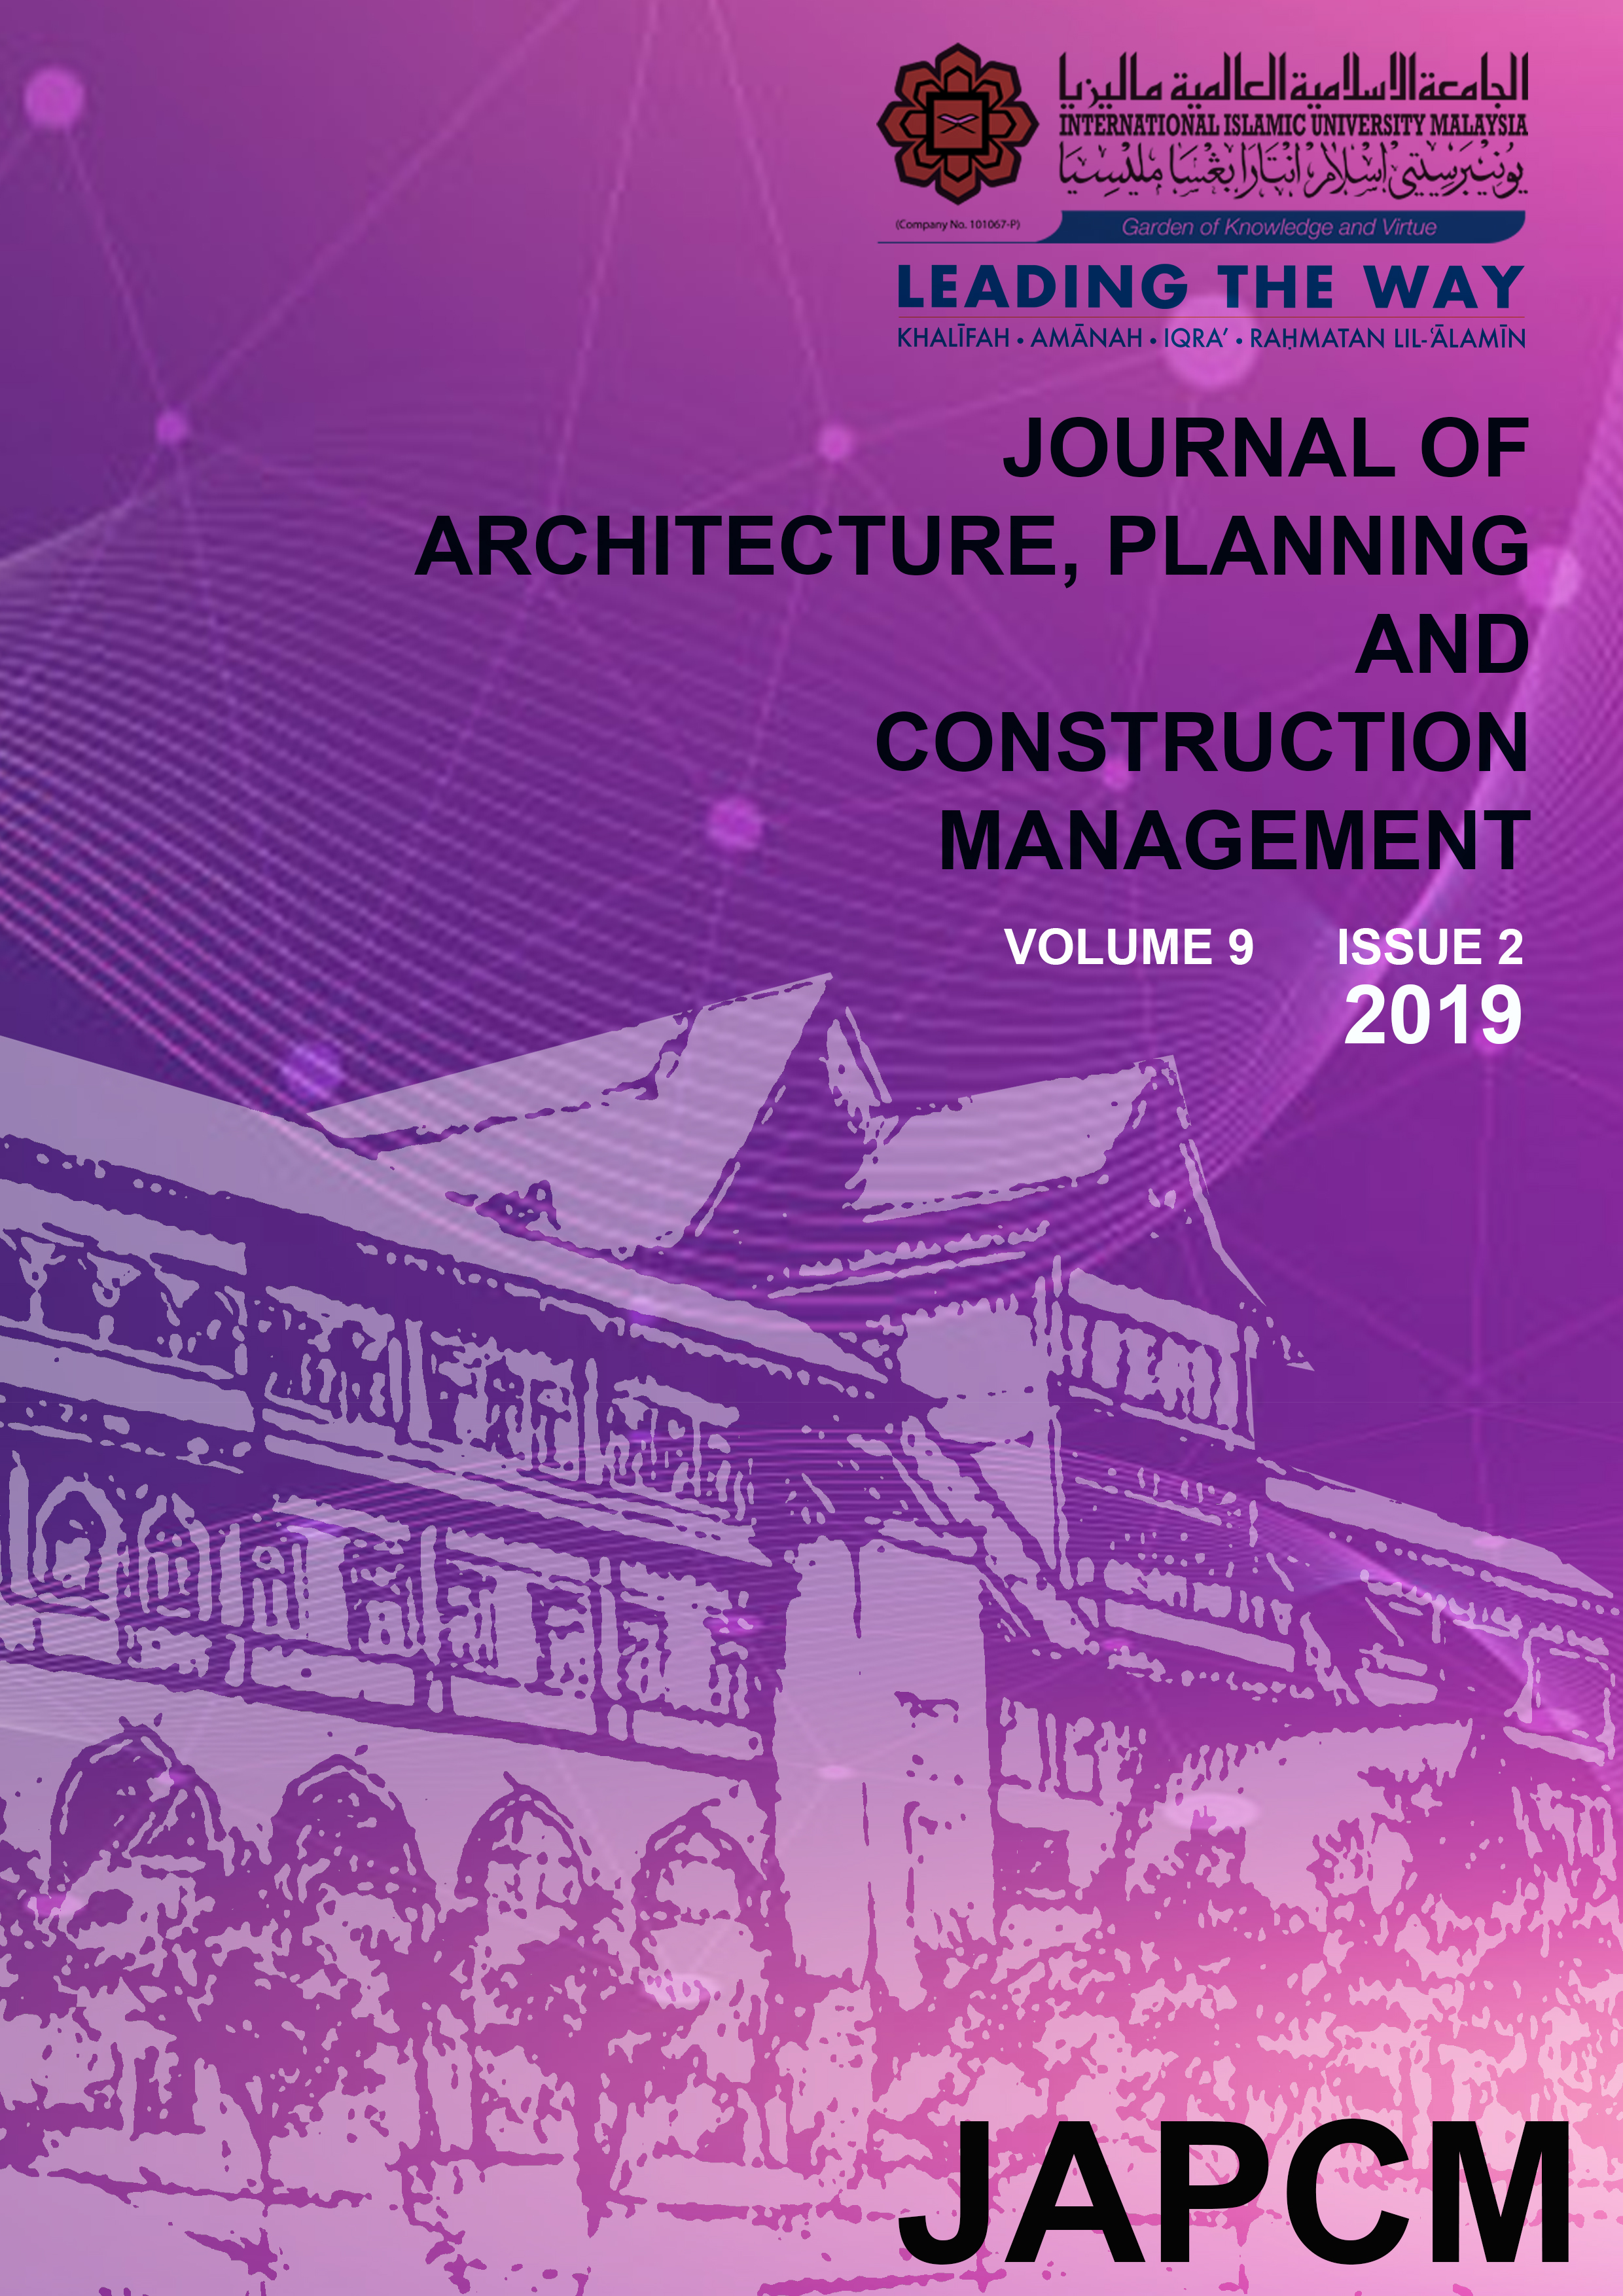 JAPCM Volume 9 Issue 2 2019 is out now!